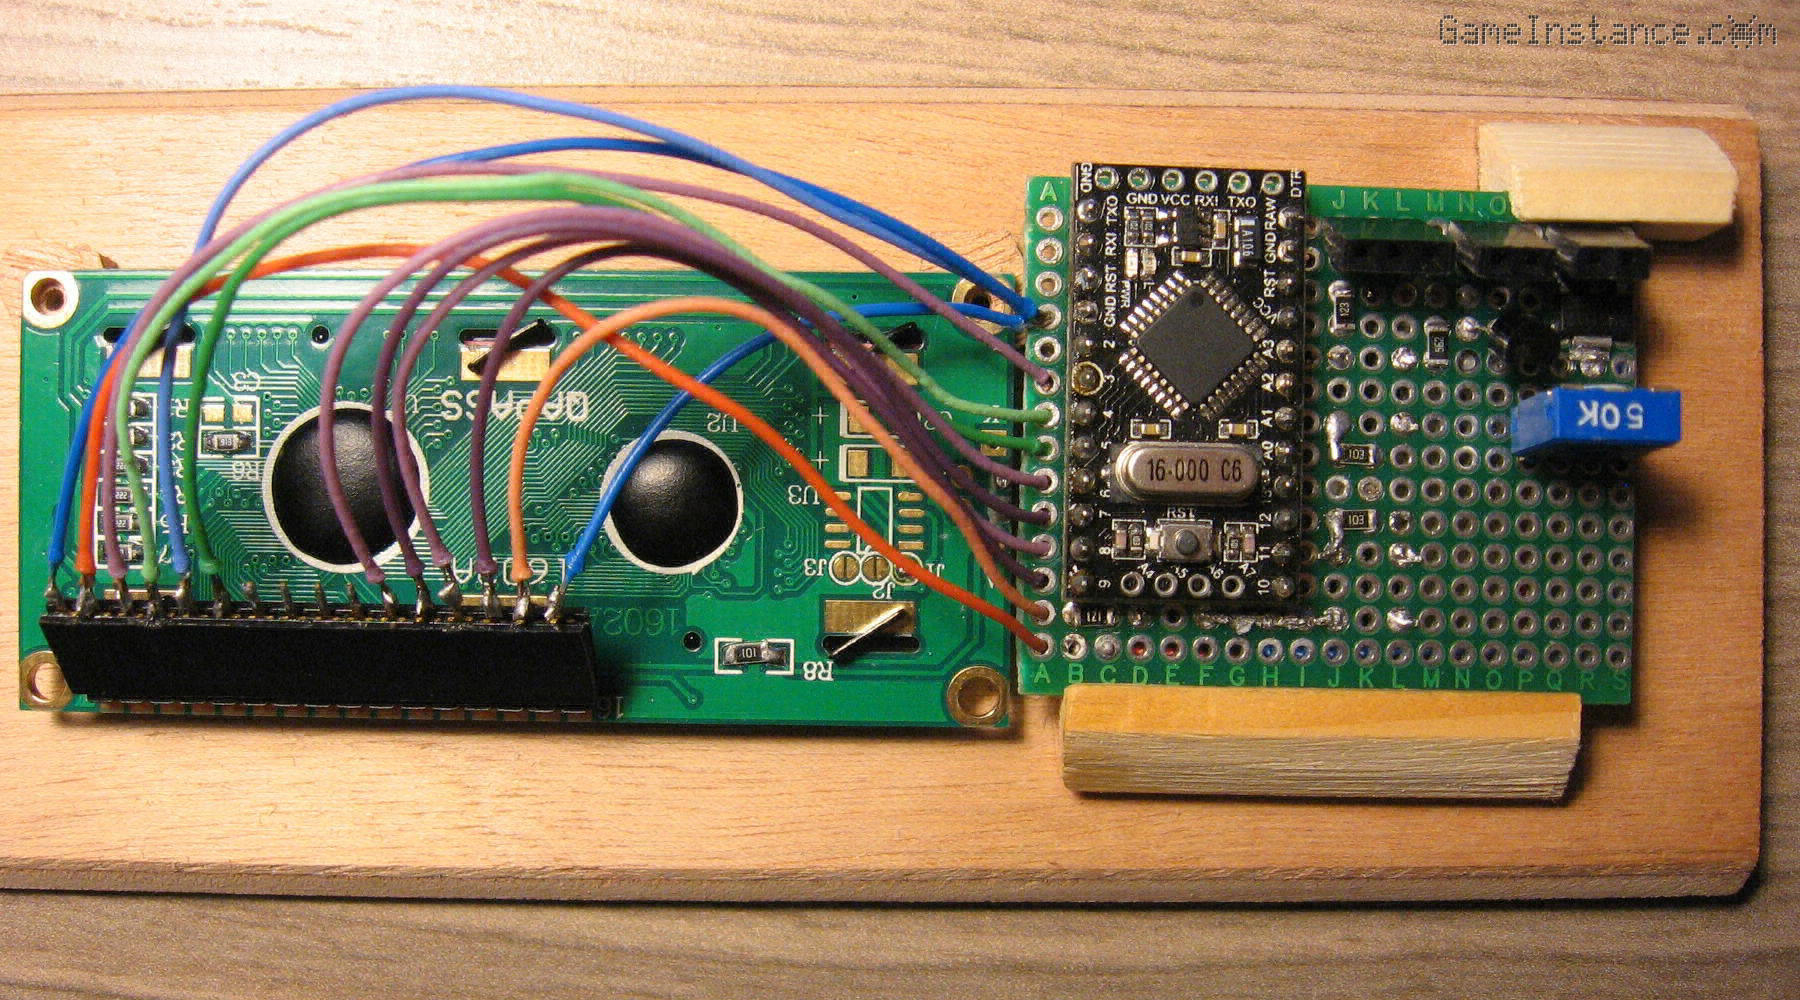 UV-Box 400 - Back side of the front panel. The PCB and LCD in place.